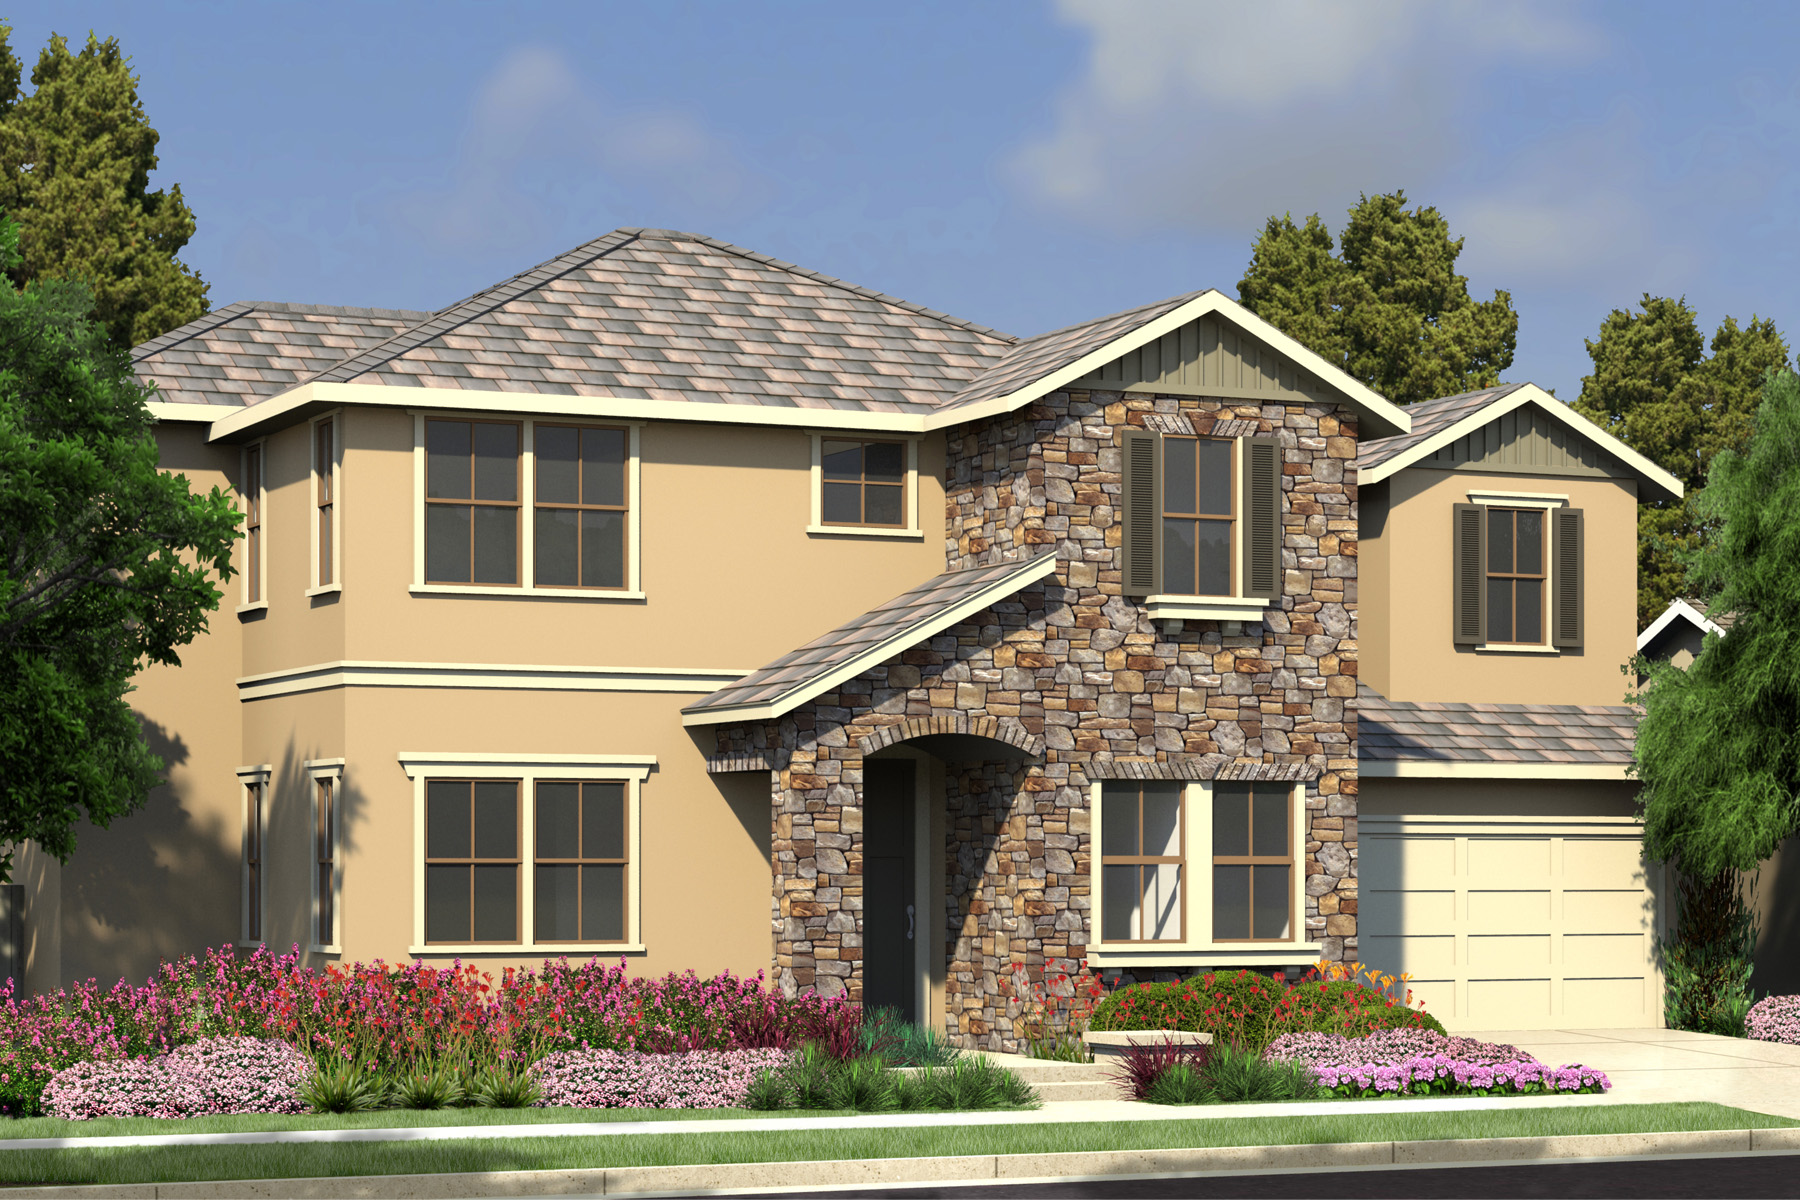 whistler, irvine homes, new irvine homes, irvine real estate